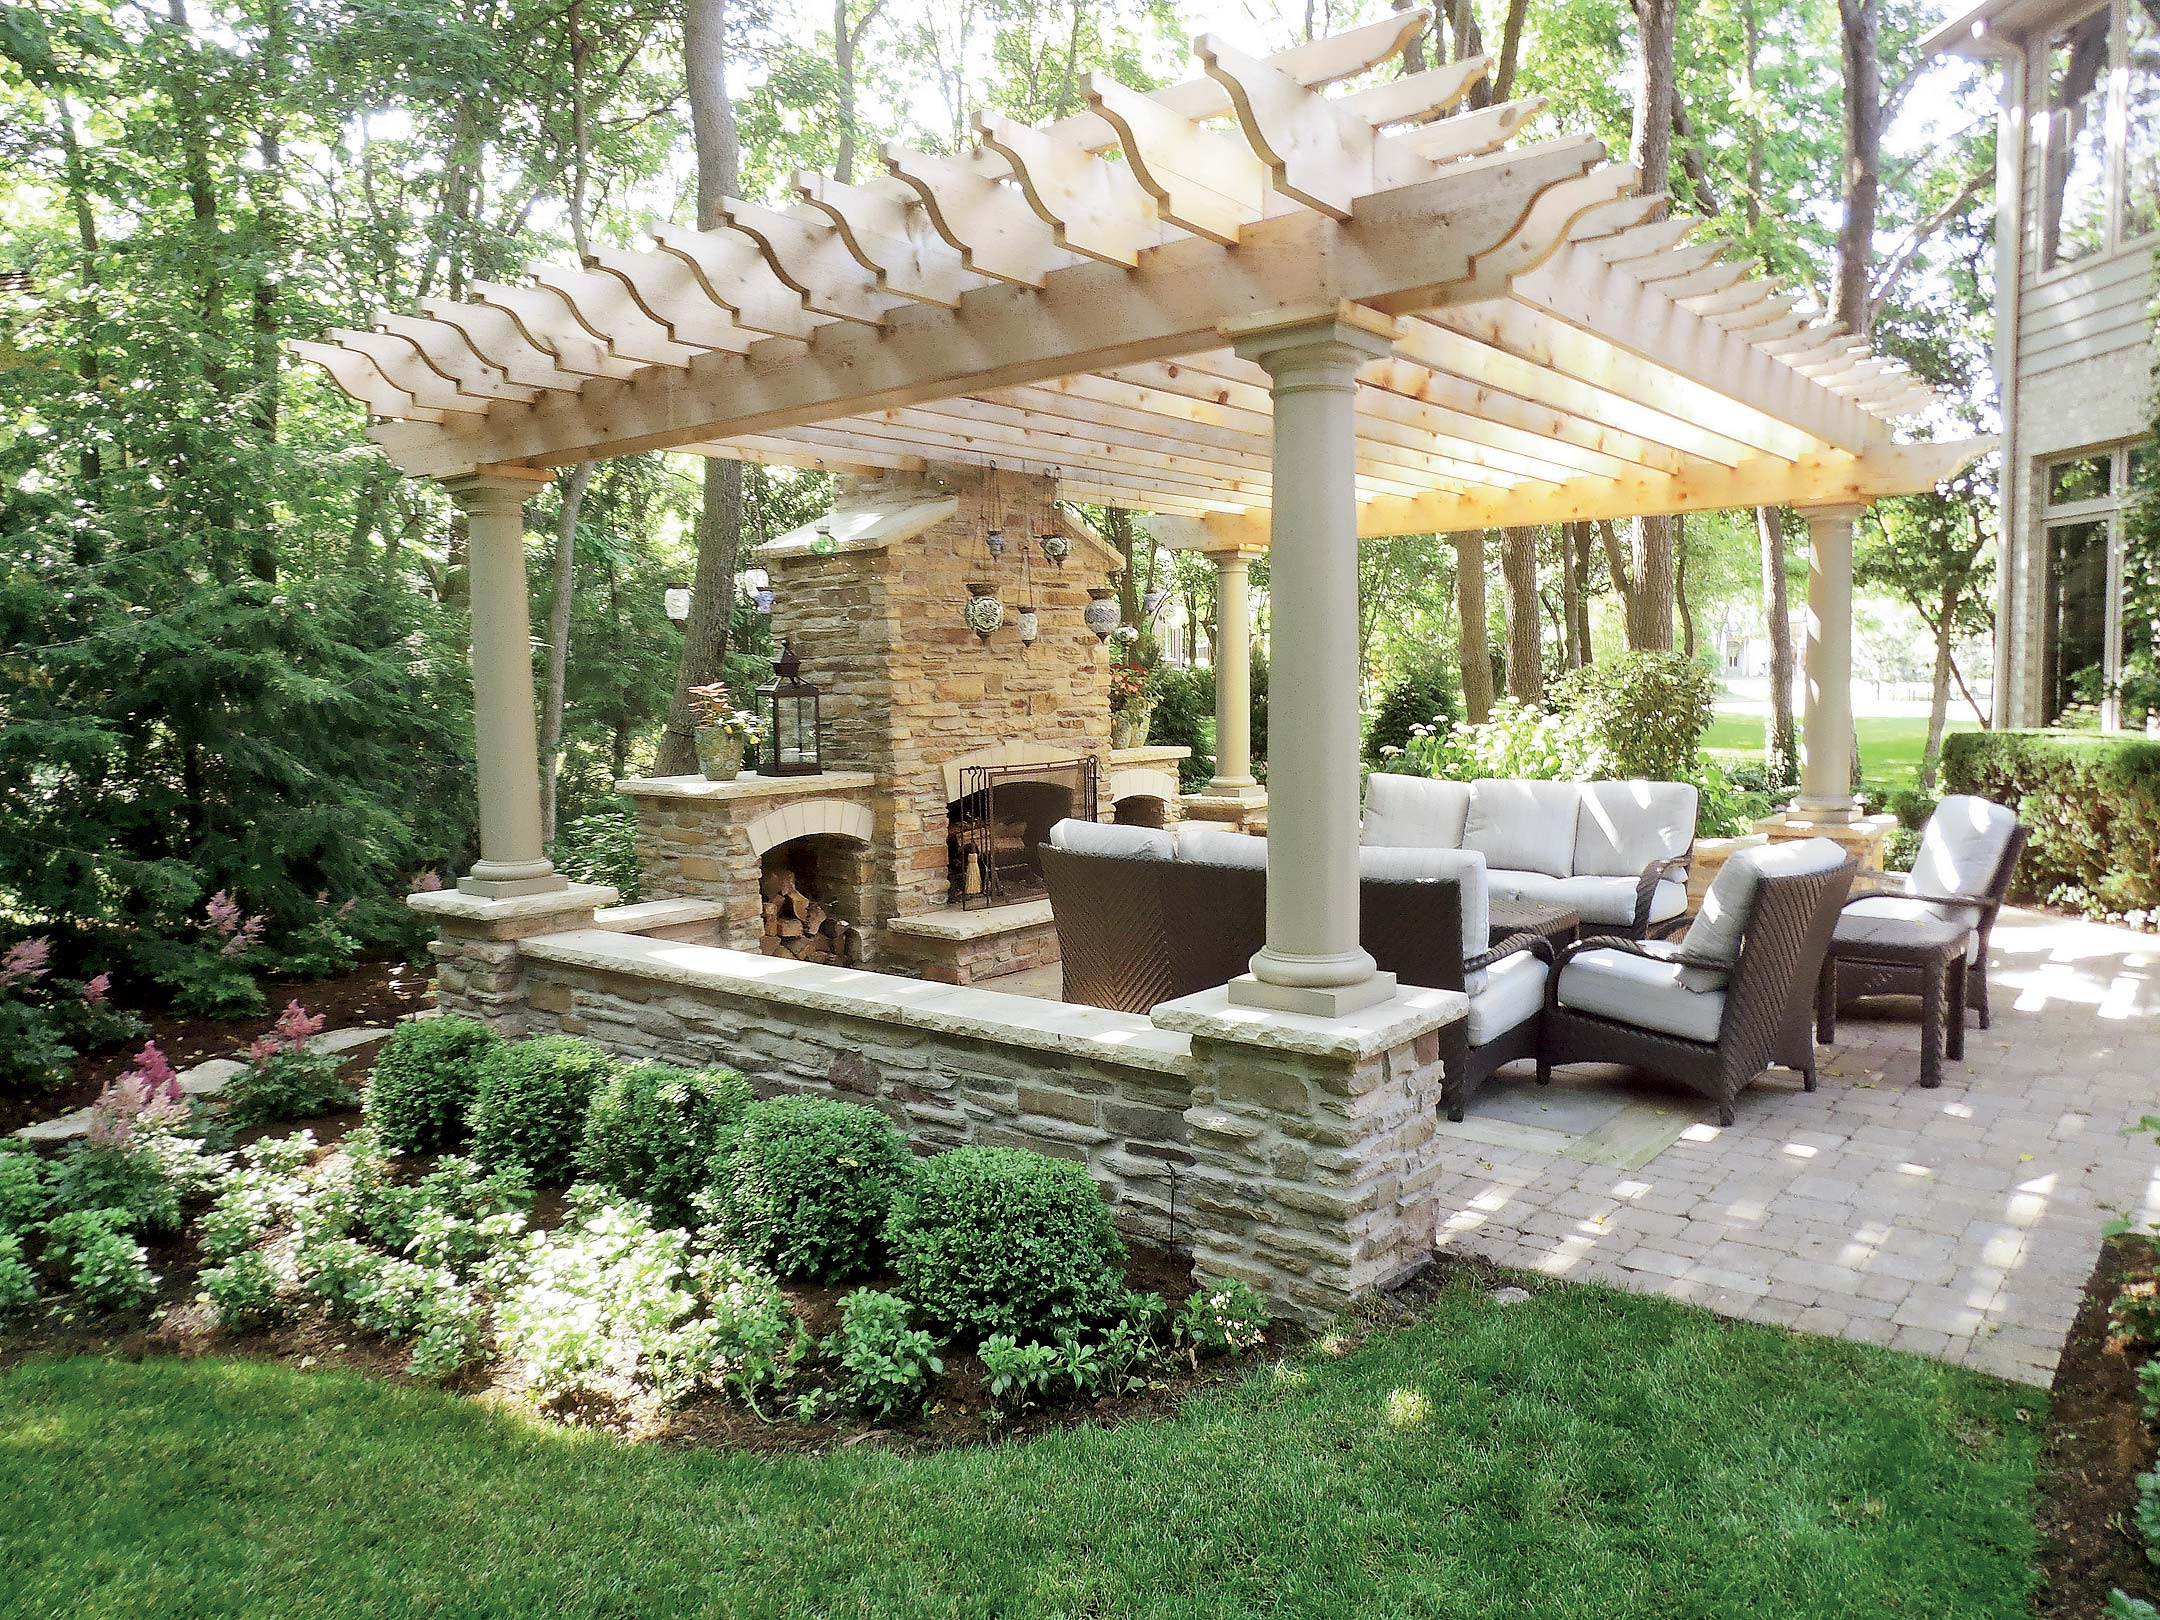 Backyard structures for entertaining Outdoor living areas images